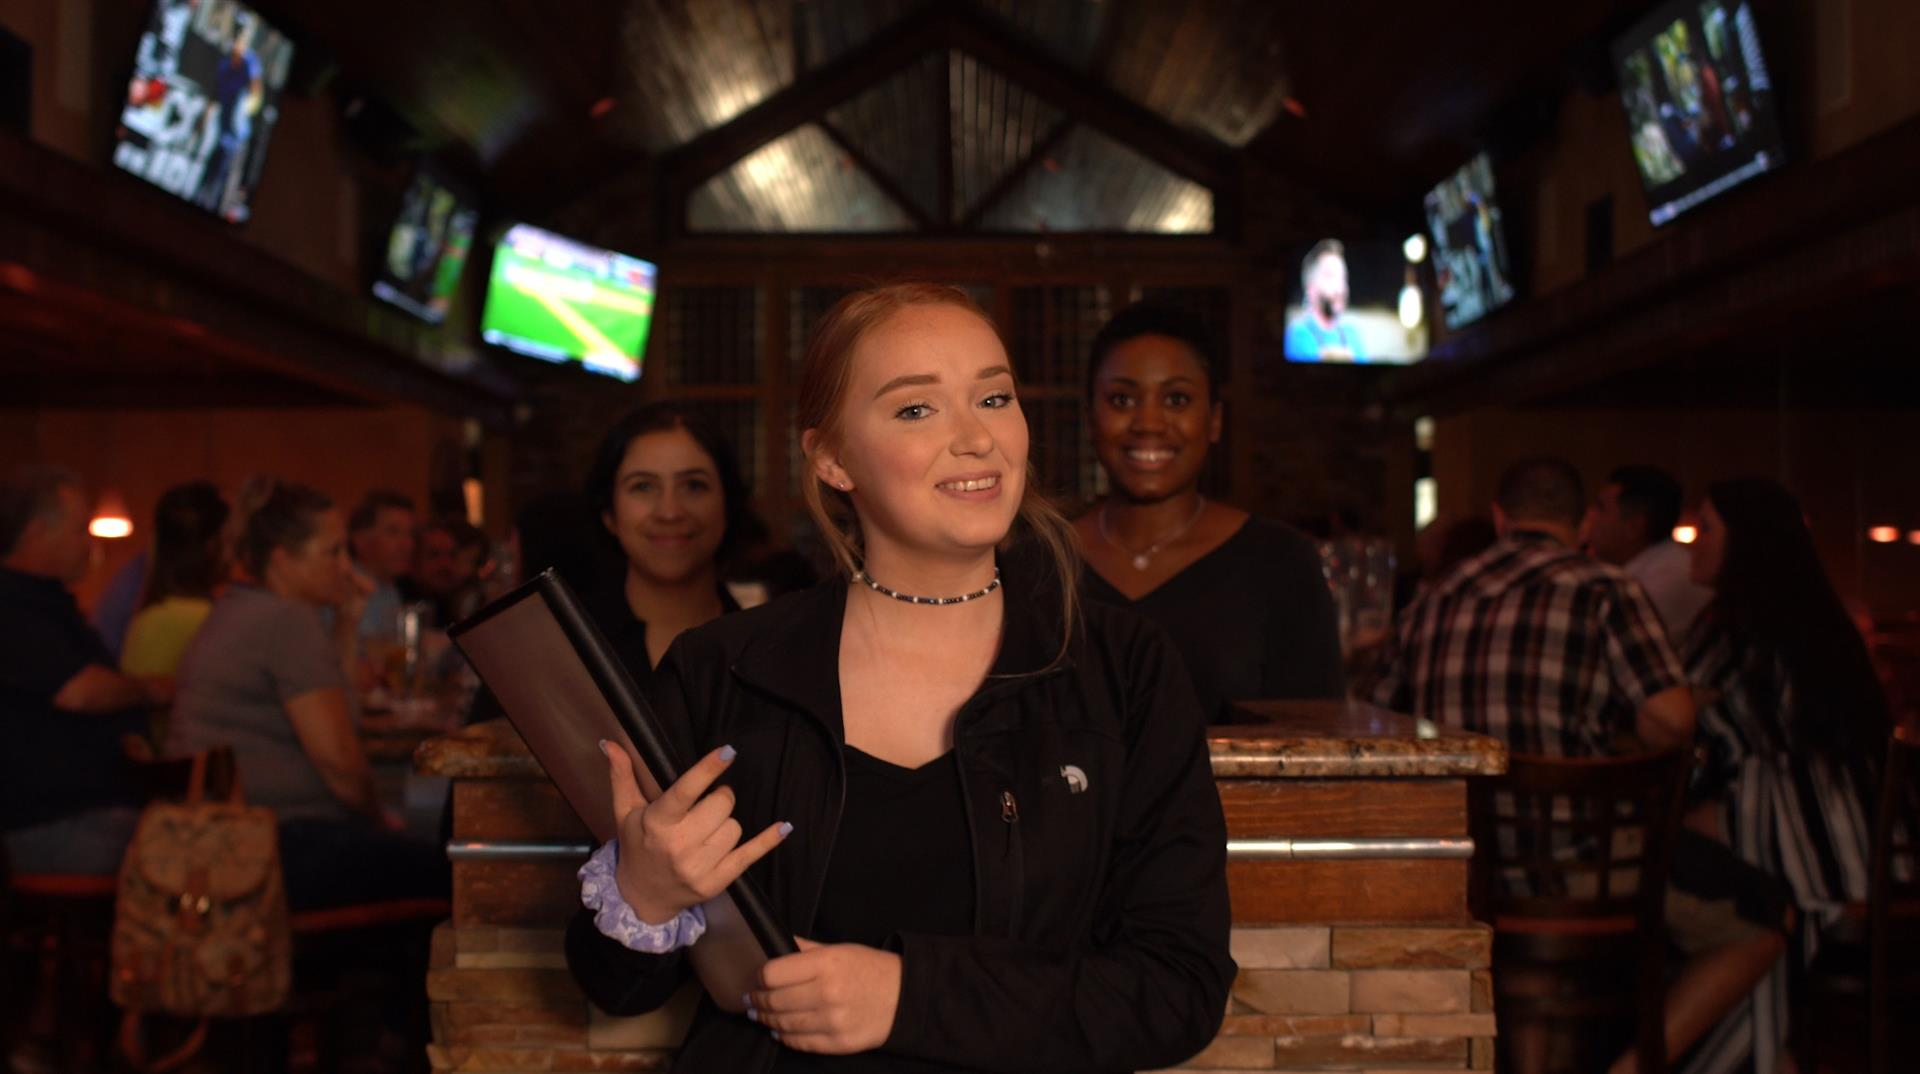 hostess greeting at the door with two other hostess behind her